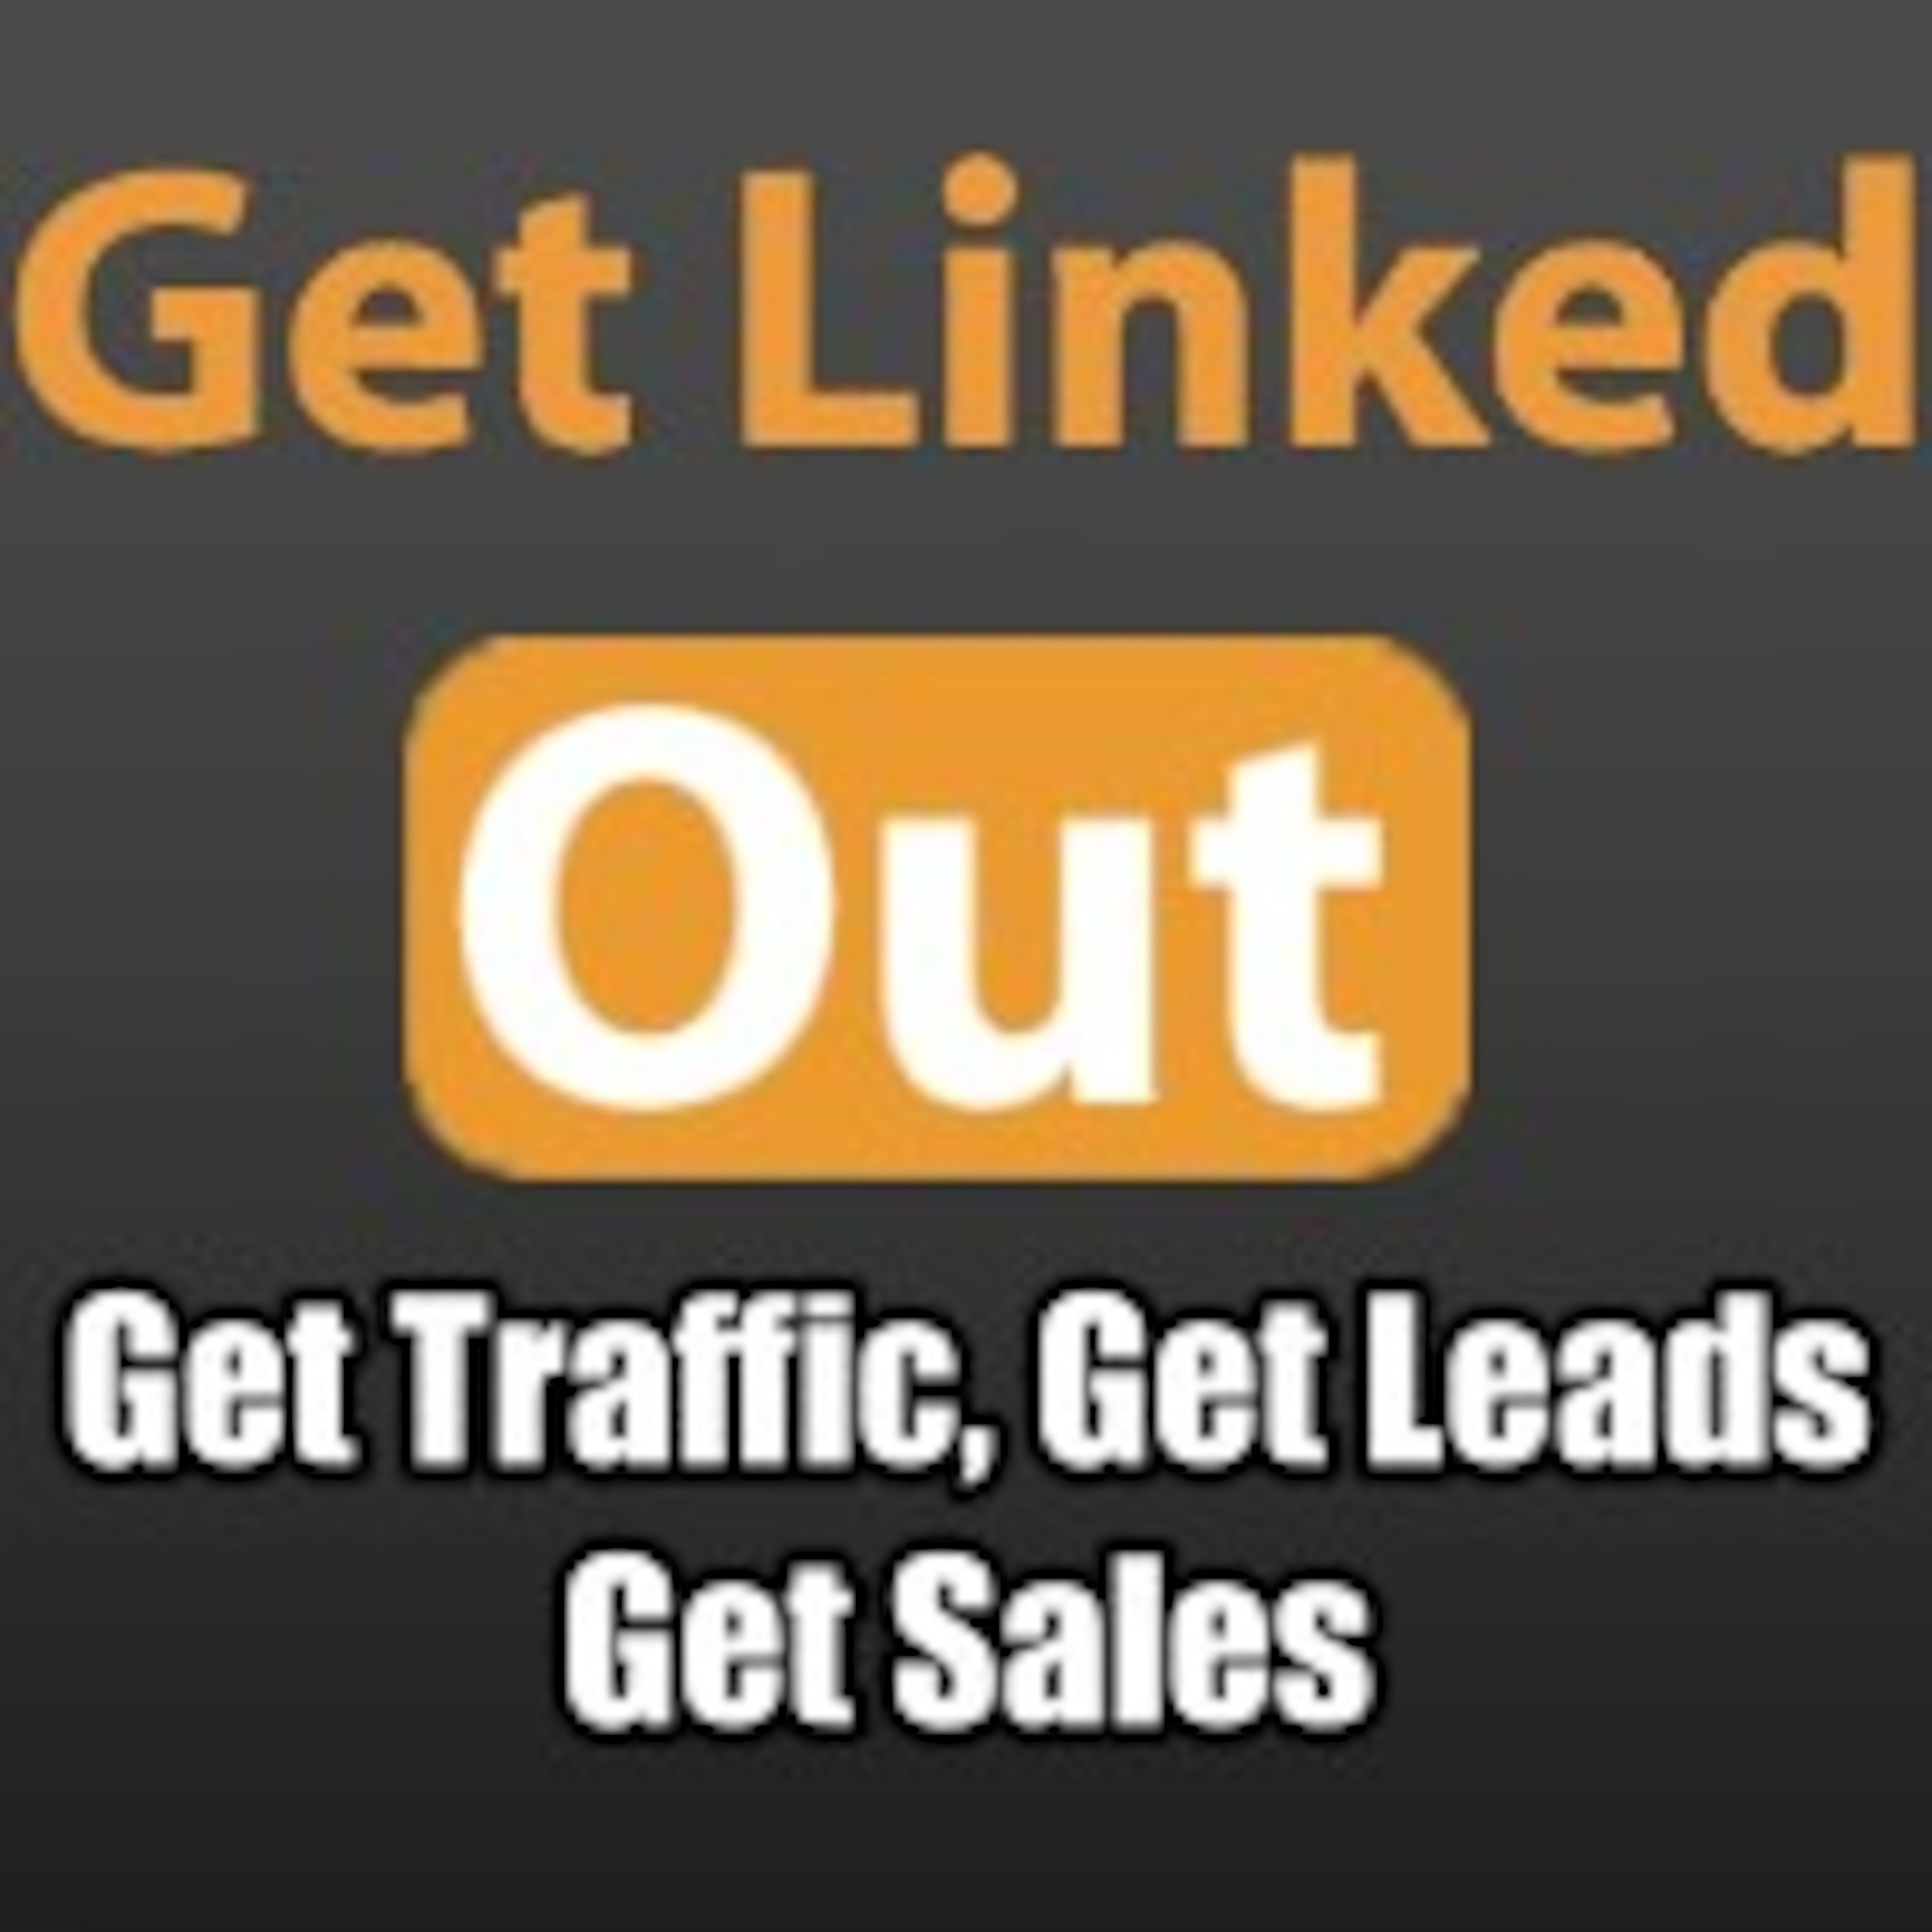 GetLinkedOut.com Launches an Eight Step System to Teach You How to Grow Your Web Traffic with LinkedIn